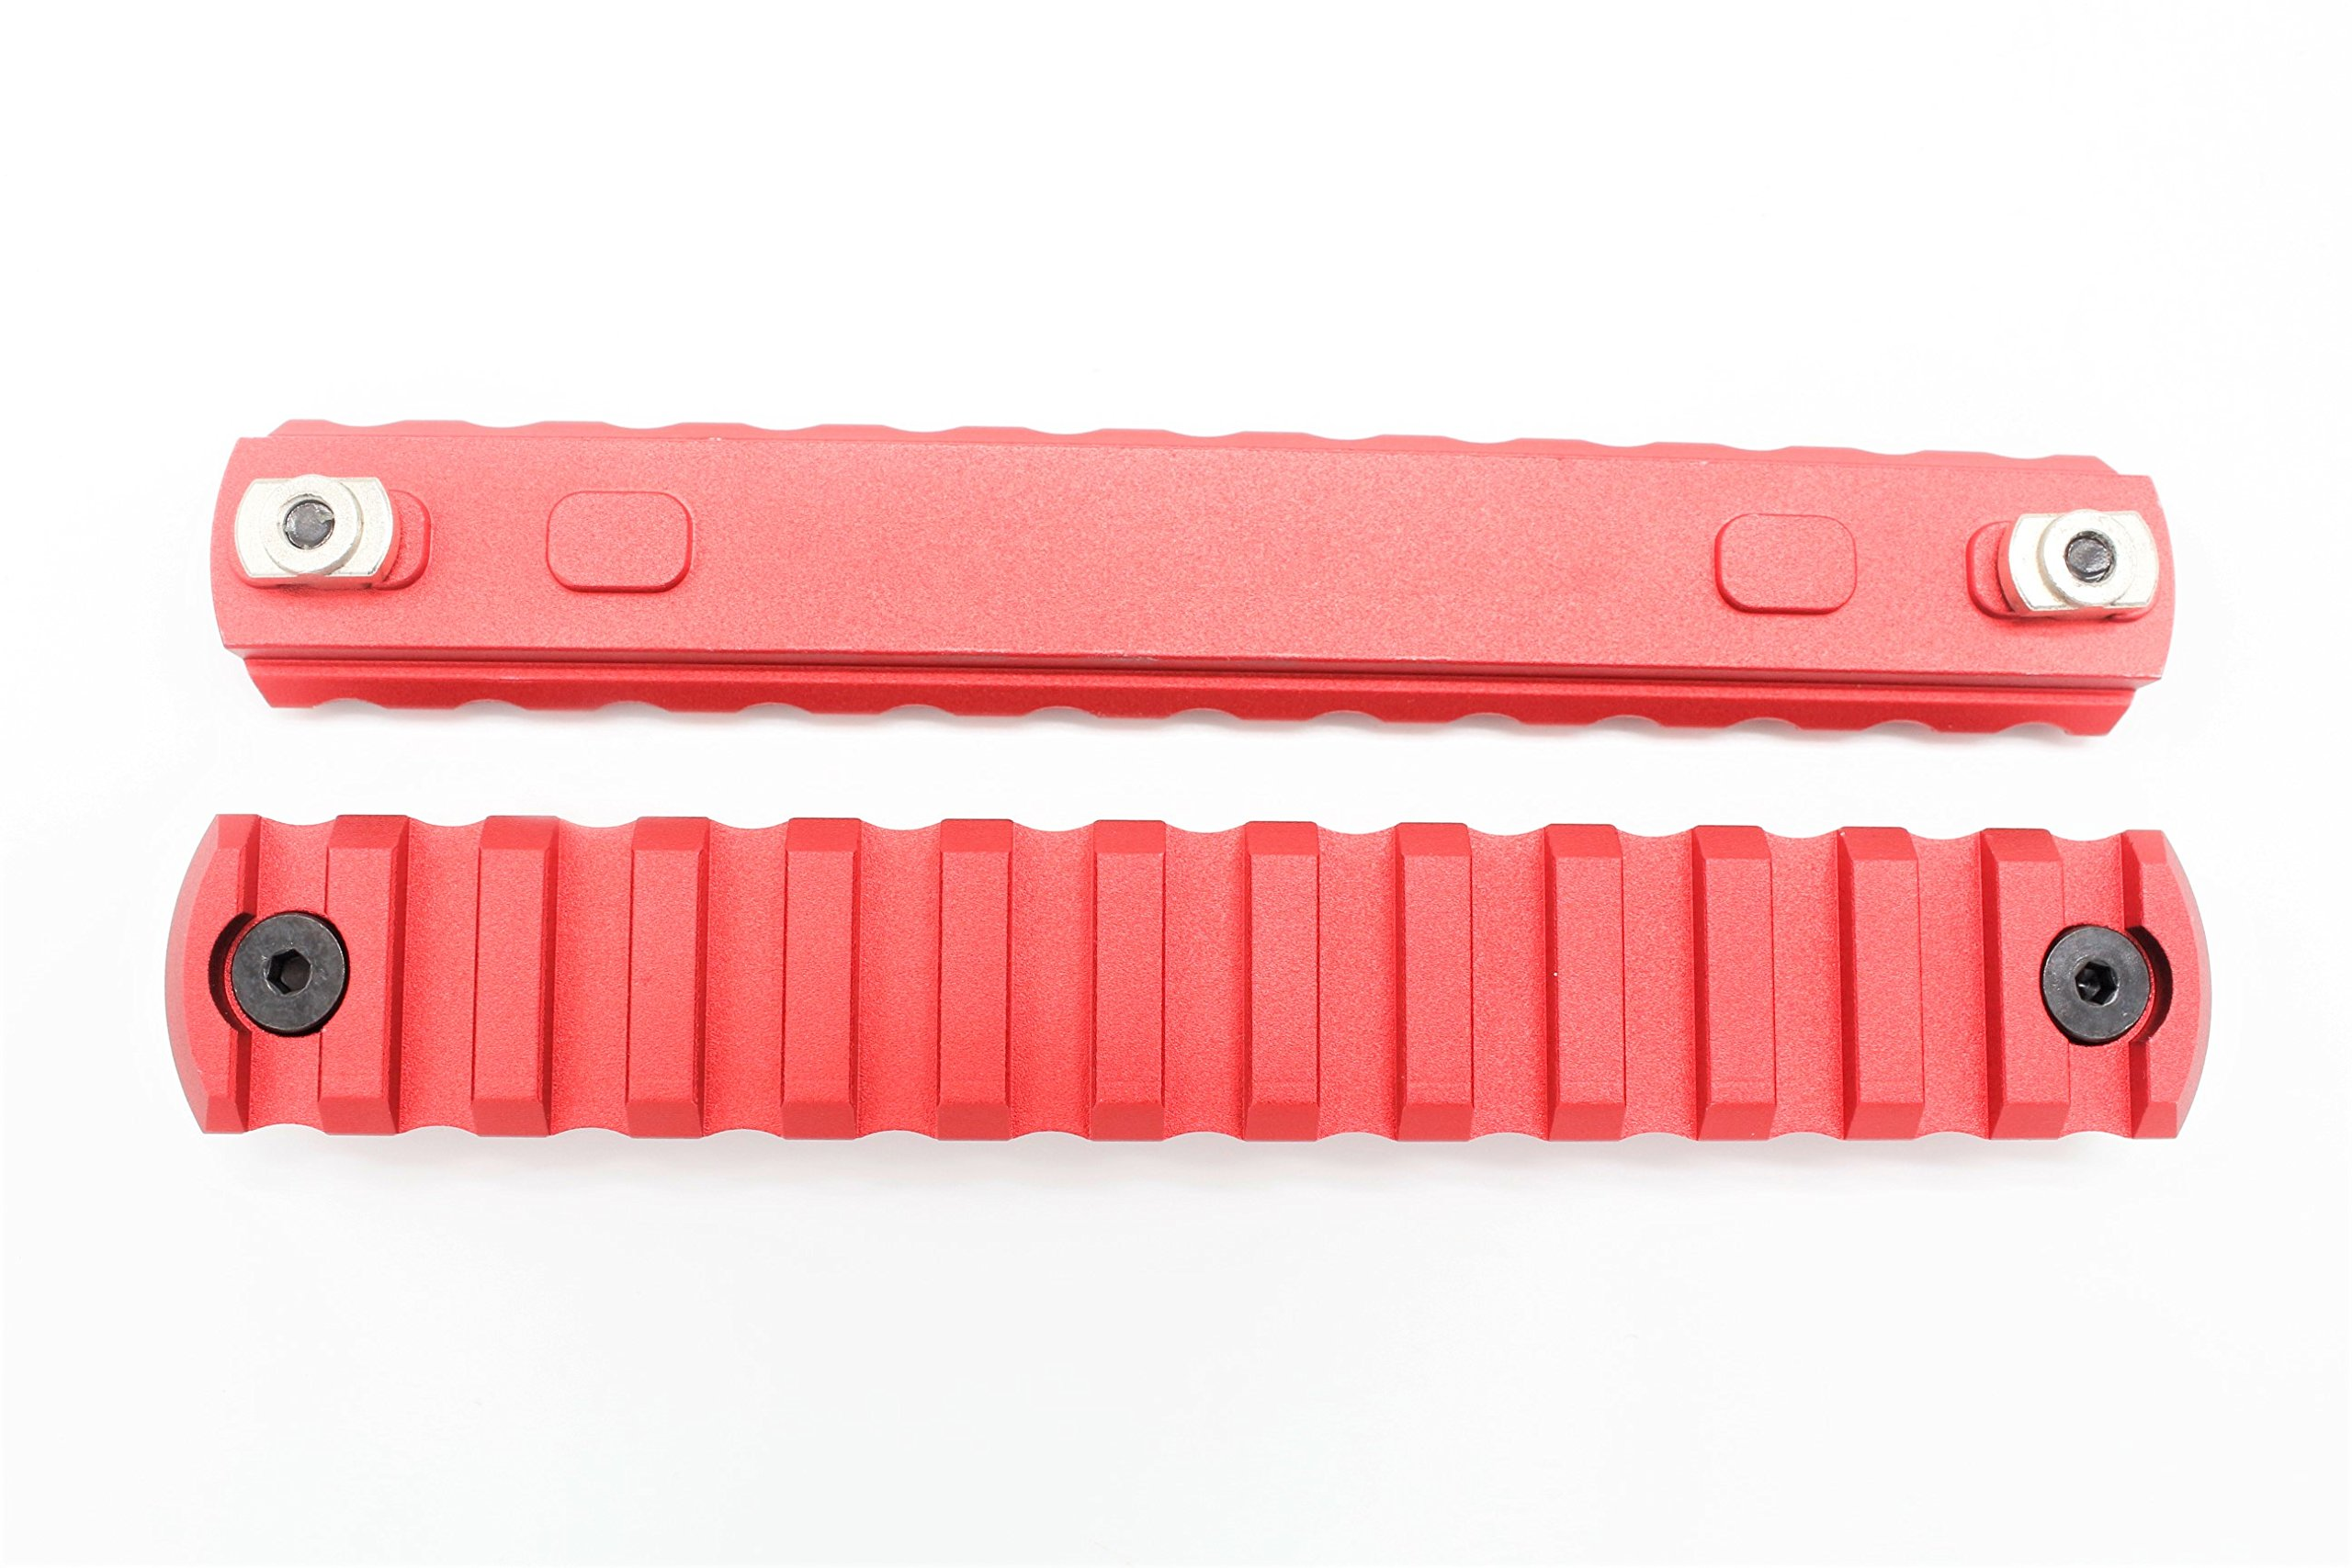 13 Slots M-lok Picatinny/Weaver Rail Sections Red Anodized for M-lok Handguard System by Active-8